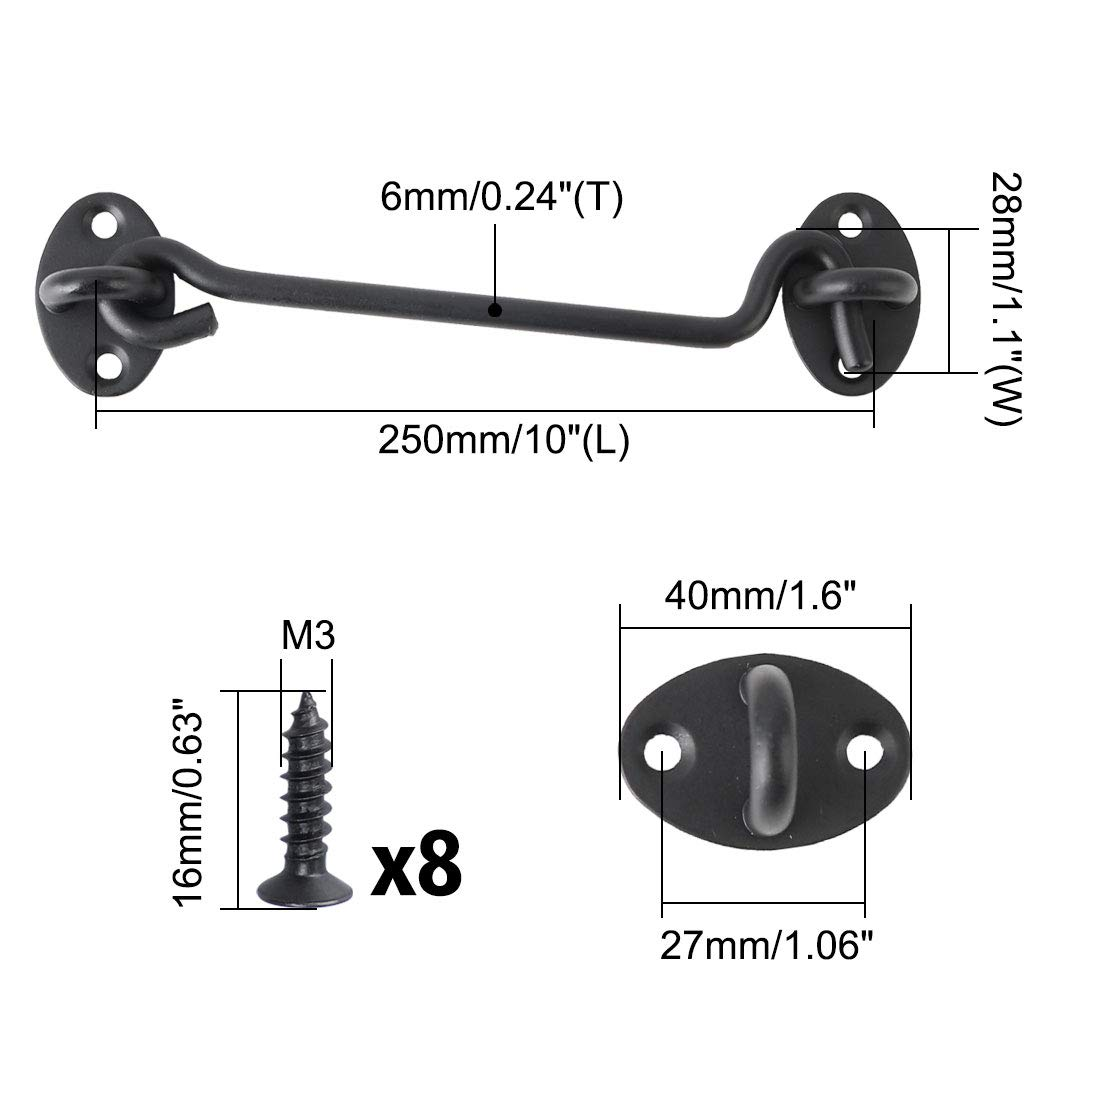 2pcs Stainless Steel Eye Latch Privacy Hooks Door with Screws Lock for Gate Shutters Window Slide Barn Shed Black uxcell/® 8 Inch Cabin Hook